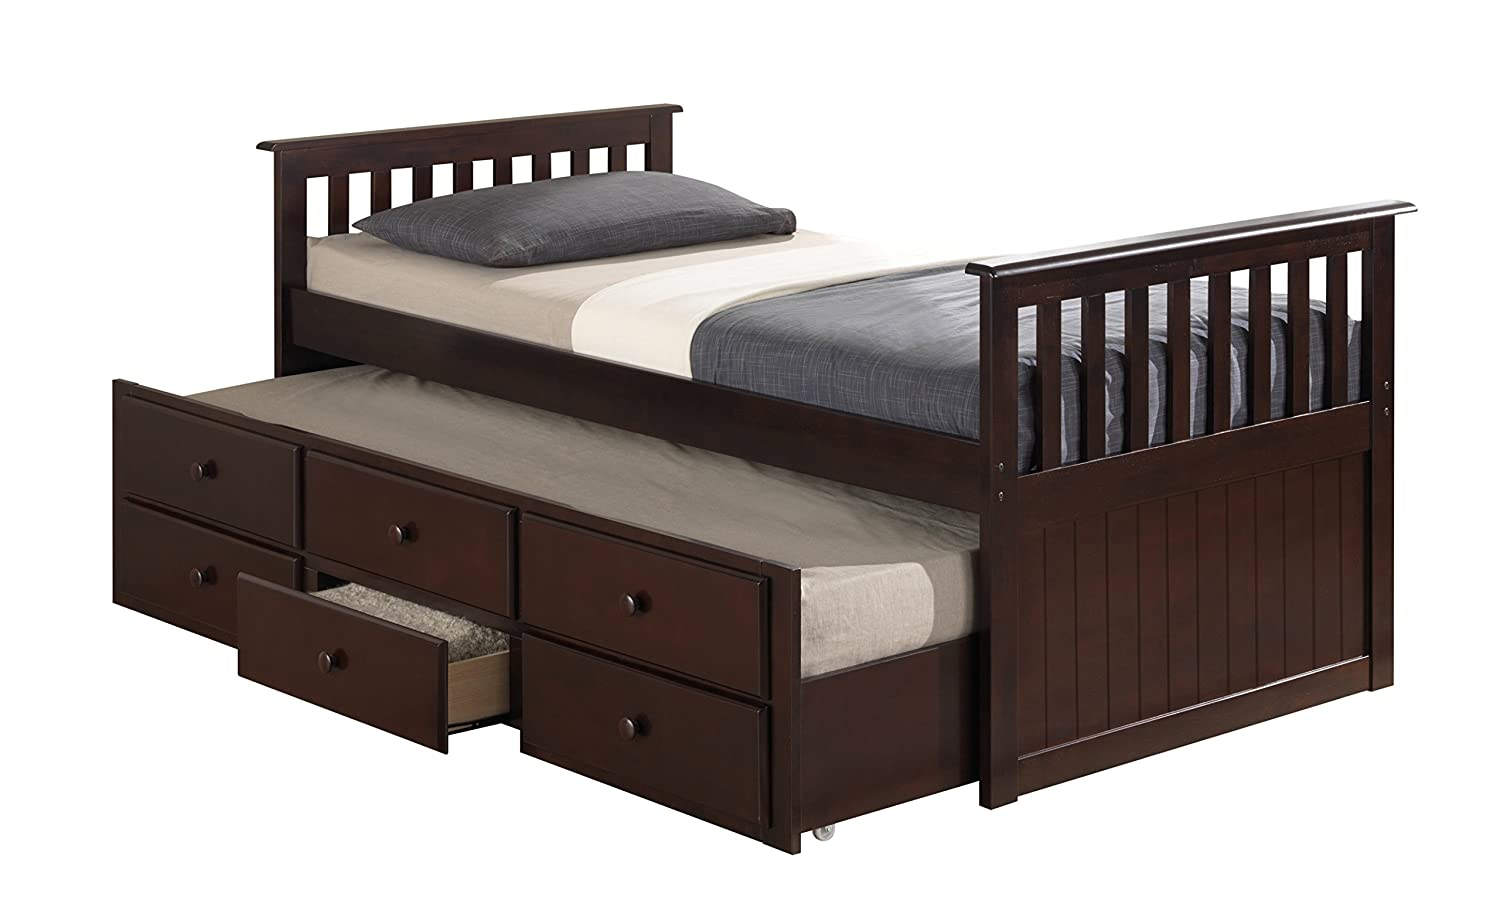 frame ulysses kitchen amazon drawer blueberry drawers full bed mates com shore dp with south dining